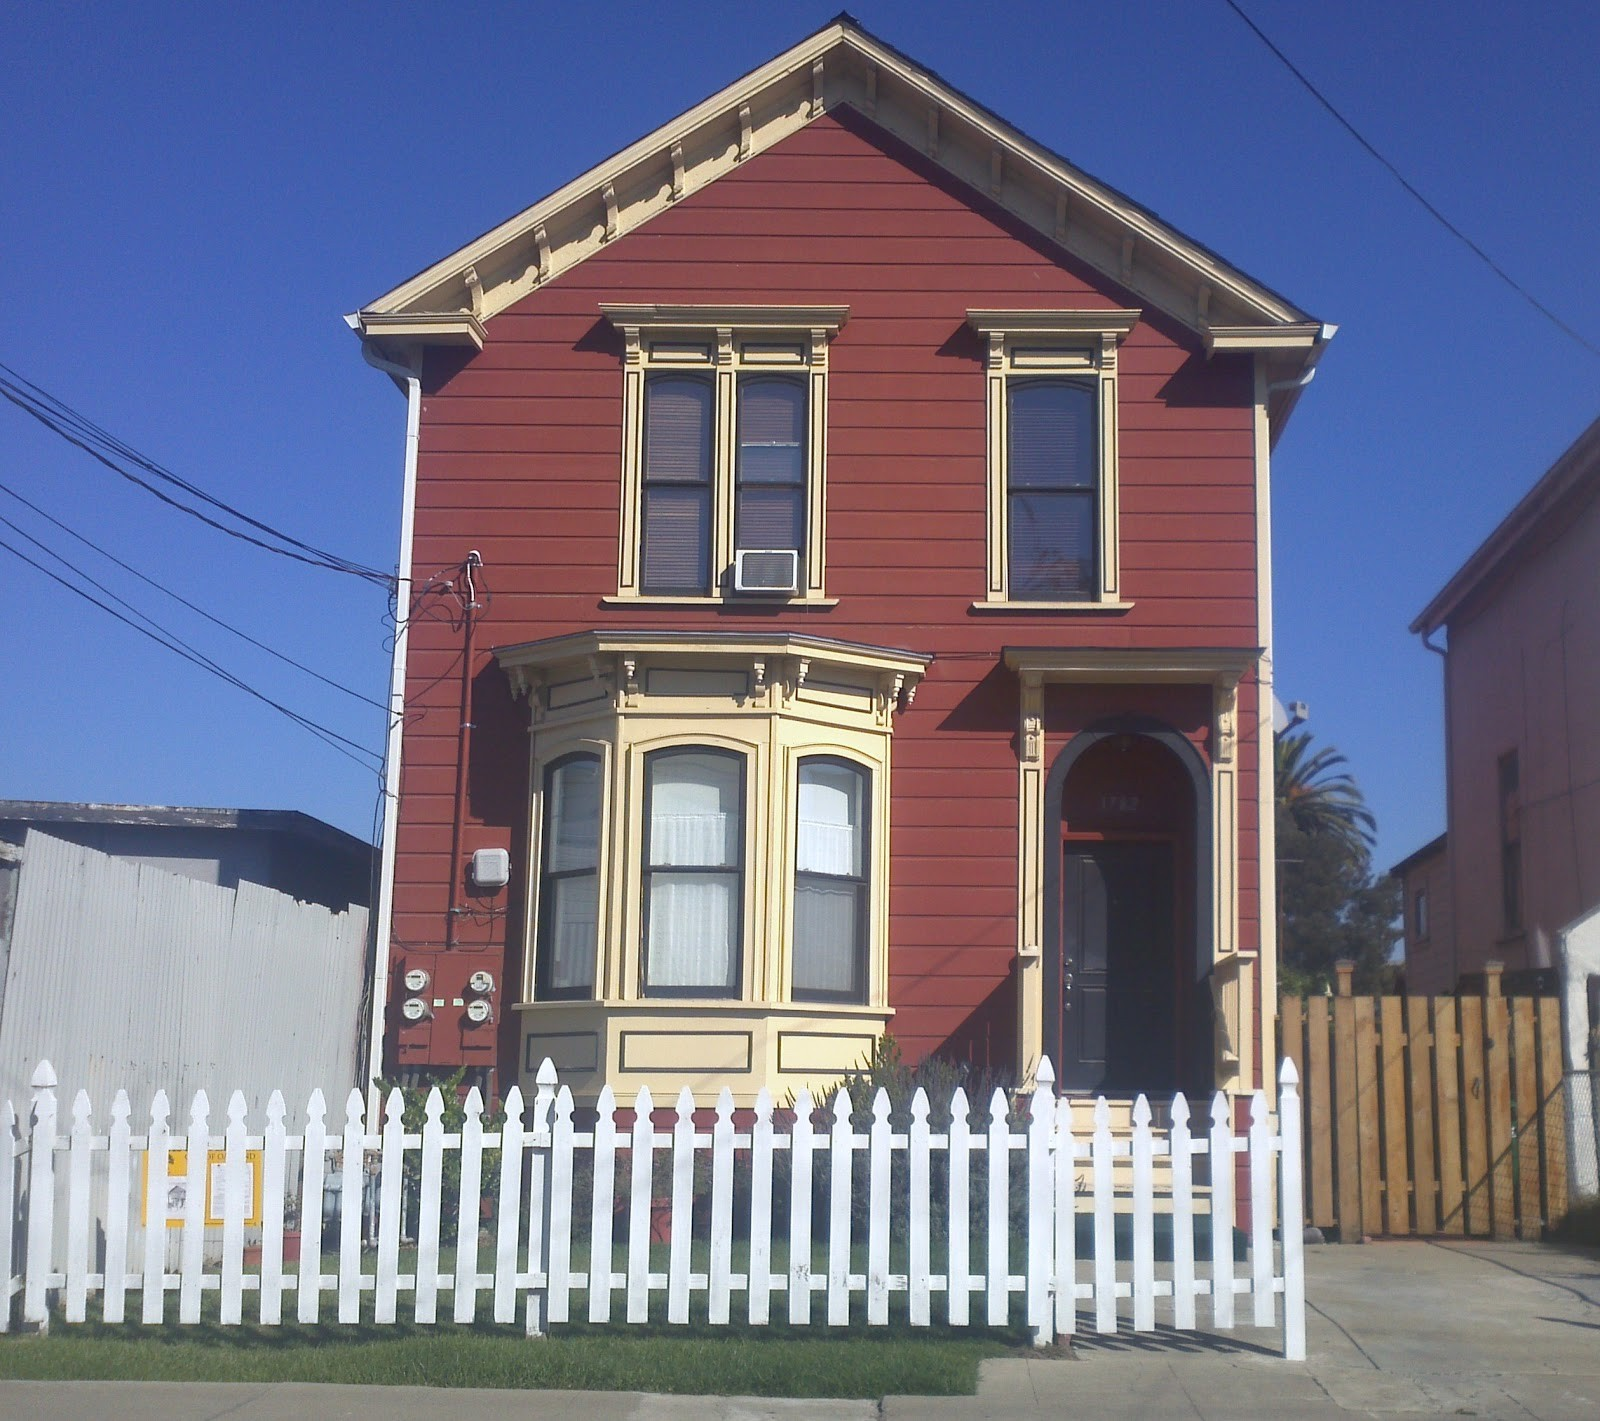 Homes For Rent East Bay Ca: California's Only Black Whaling Captain, William Shorey